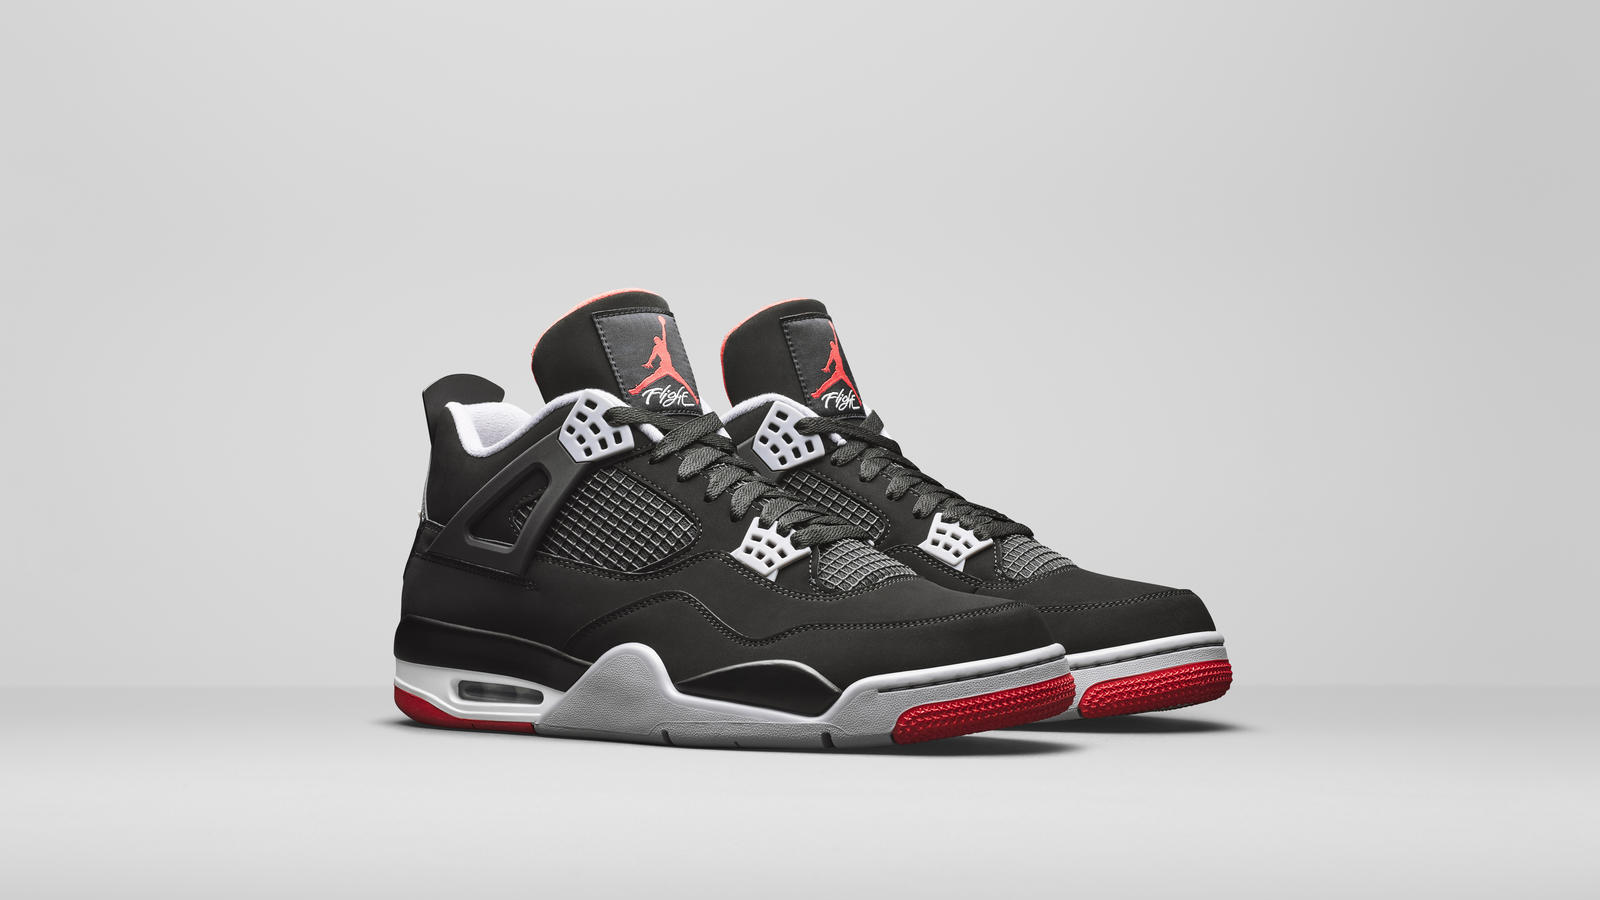 uk availability e8f16 7412c On May 4th, Jordan Brand will continue its 30th anniversary celebration of  the Air Jordan 4 Retro with the release of the BRED colorway.